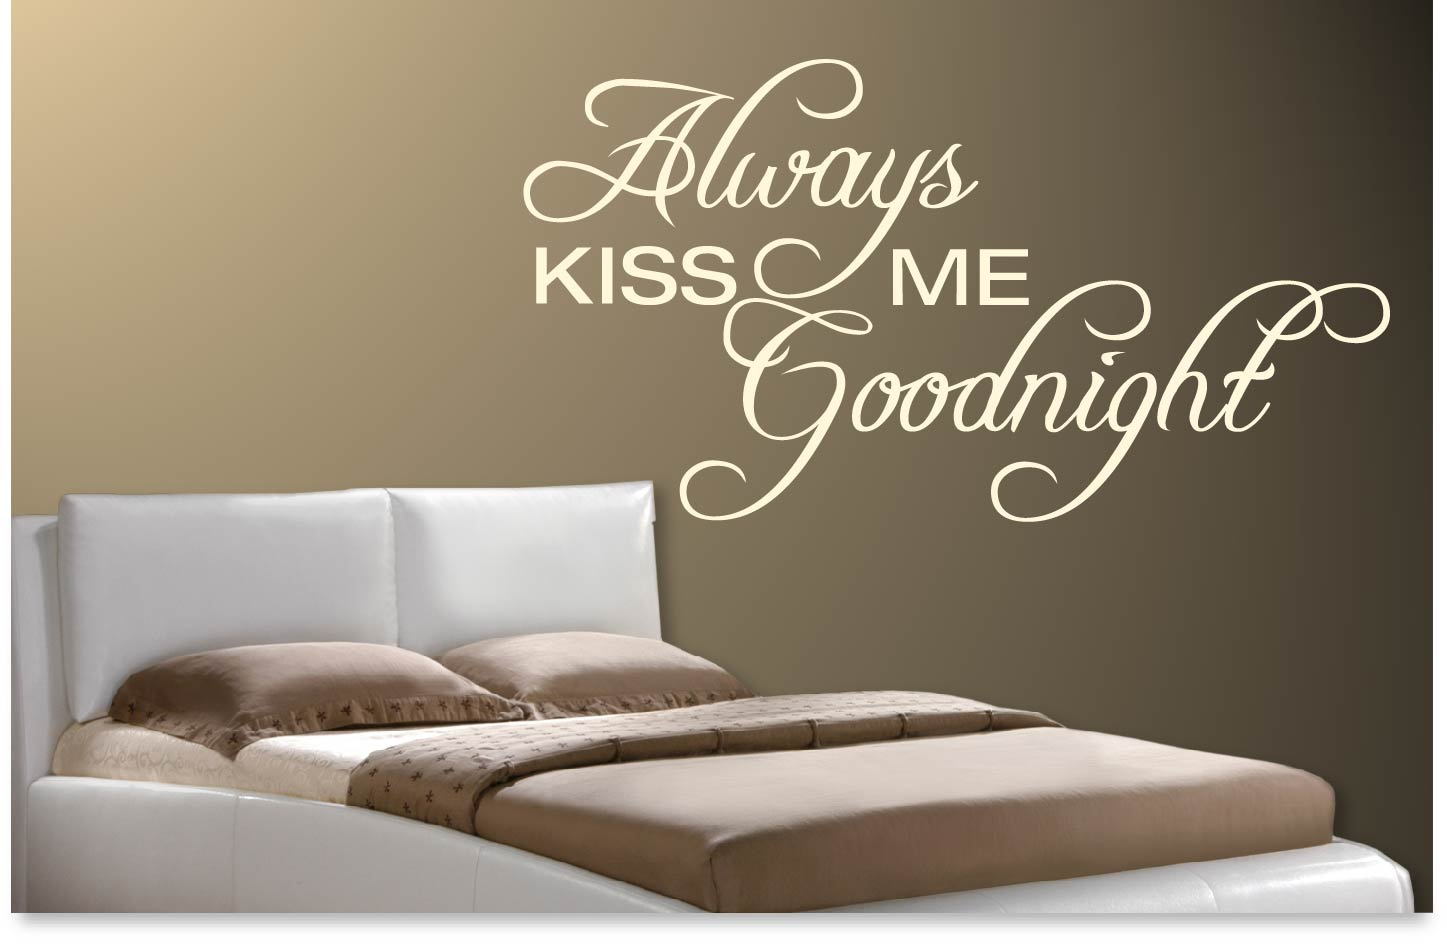 Muursticker Always kiss me goodnight | De Fabriek Muurstickers.